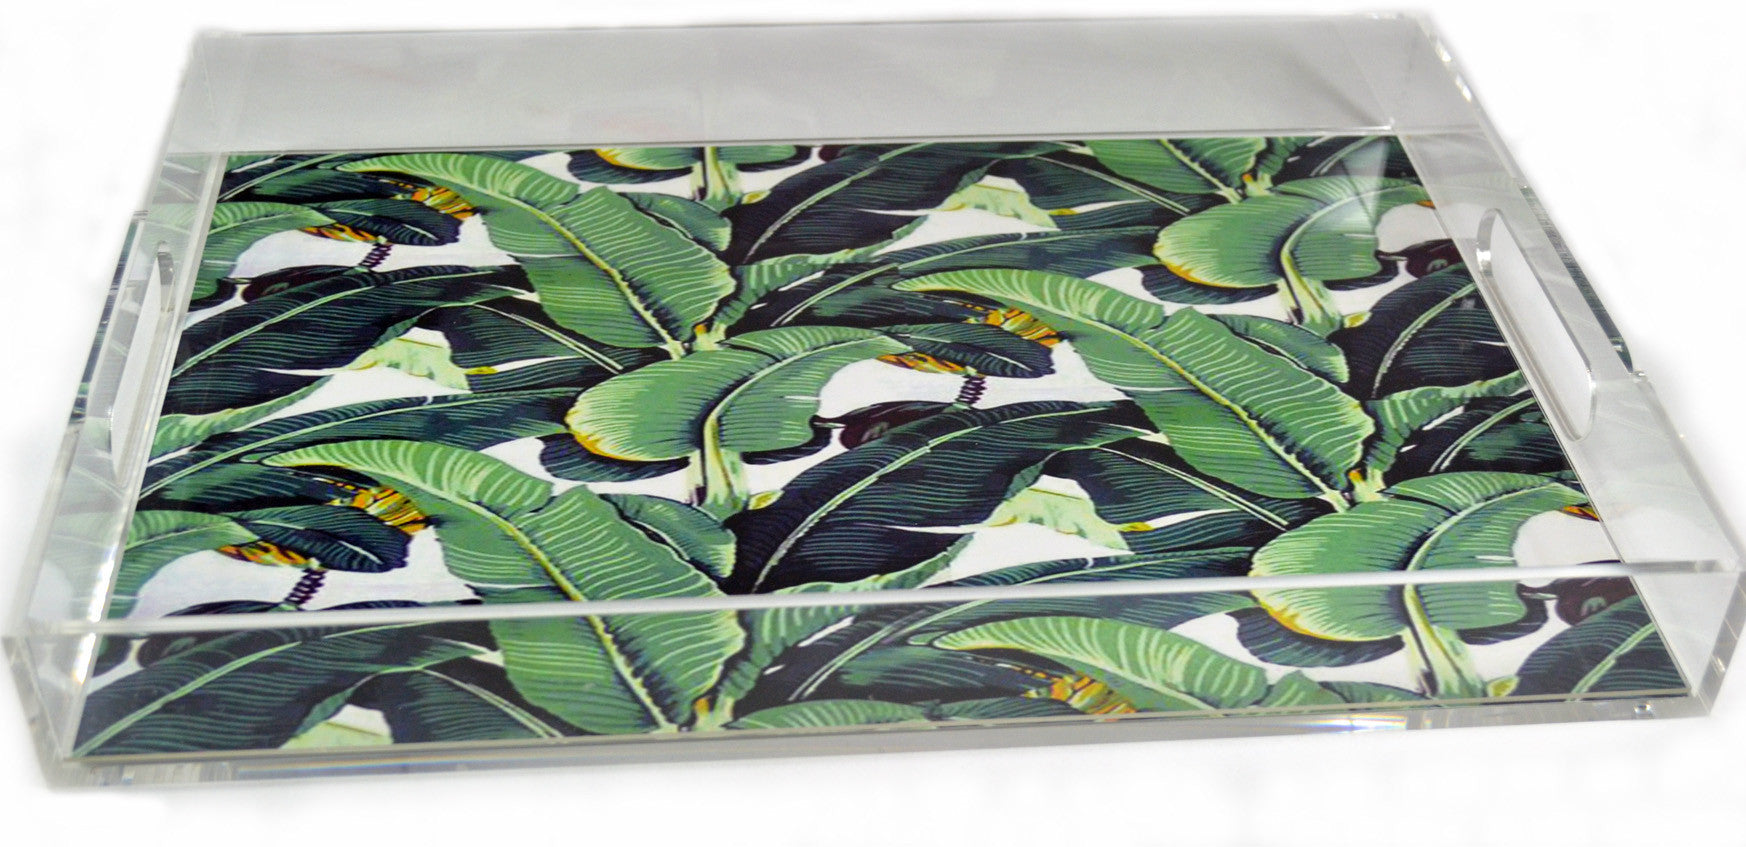 Acrylic Serving Leaf Tray